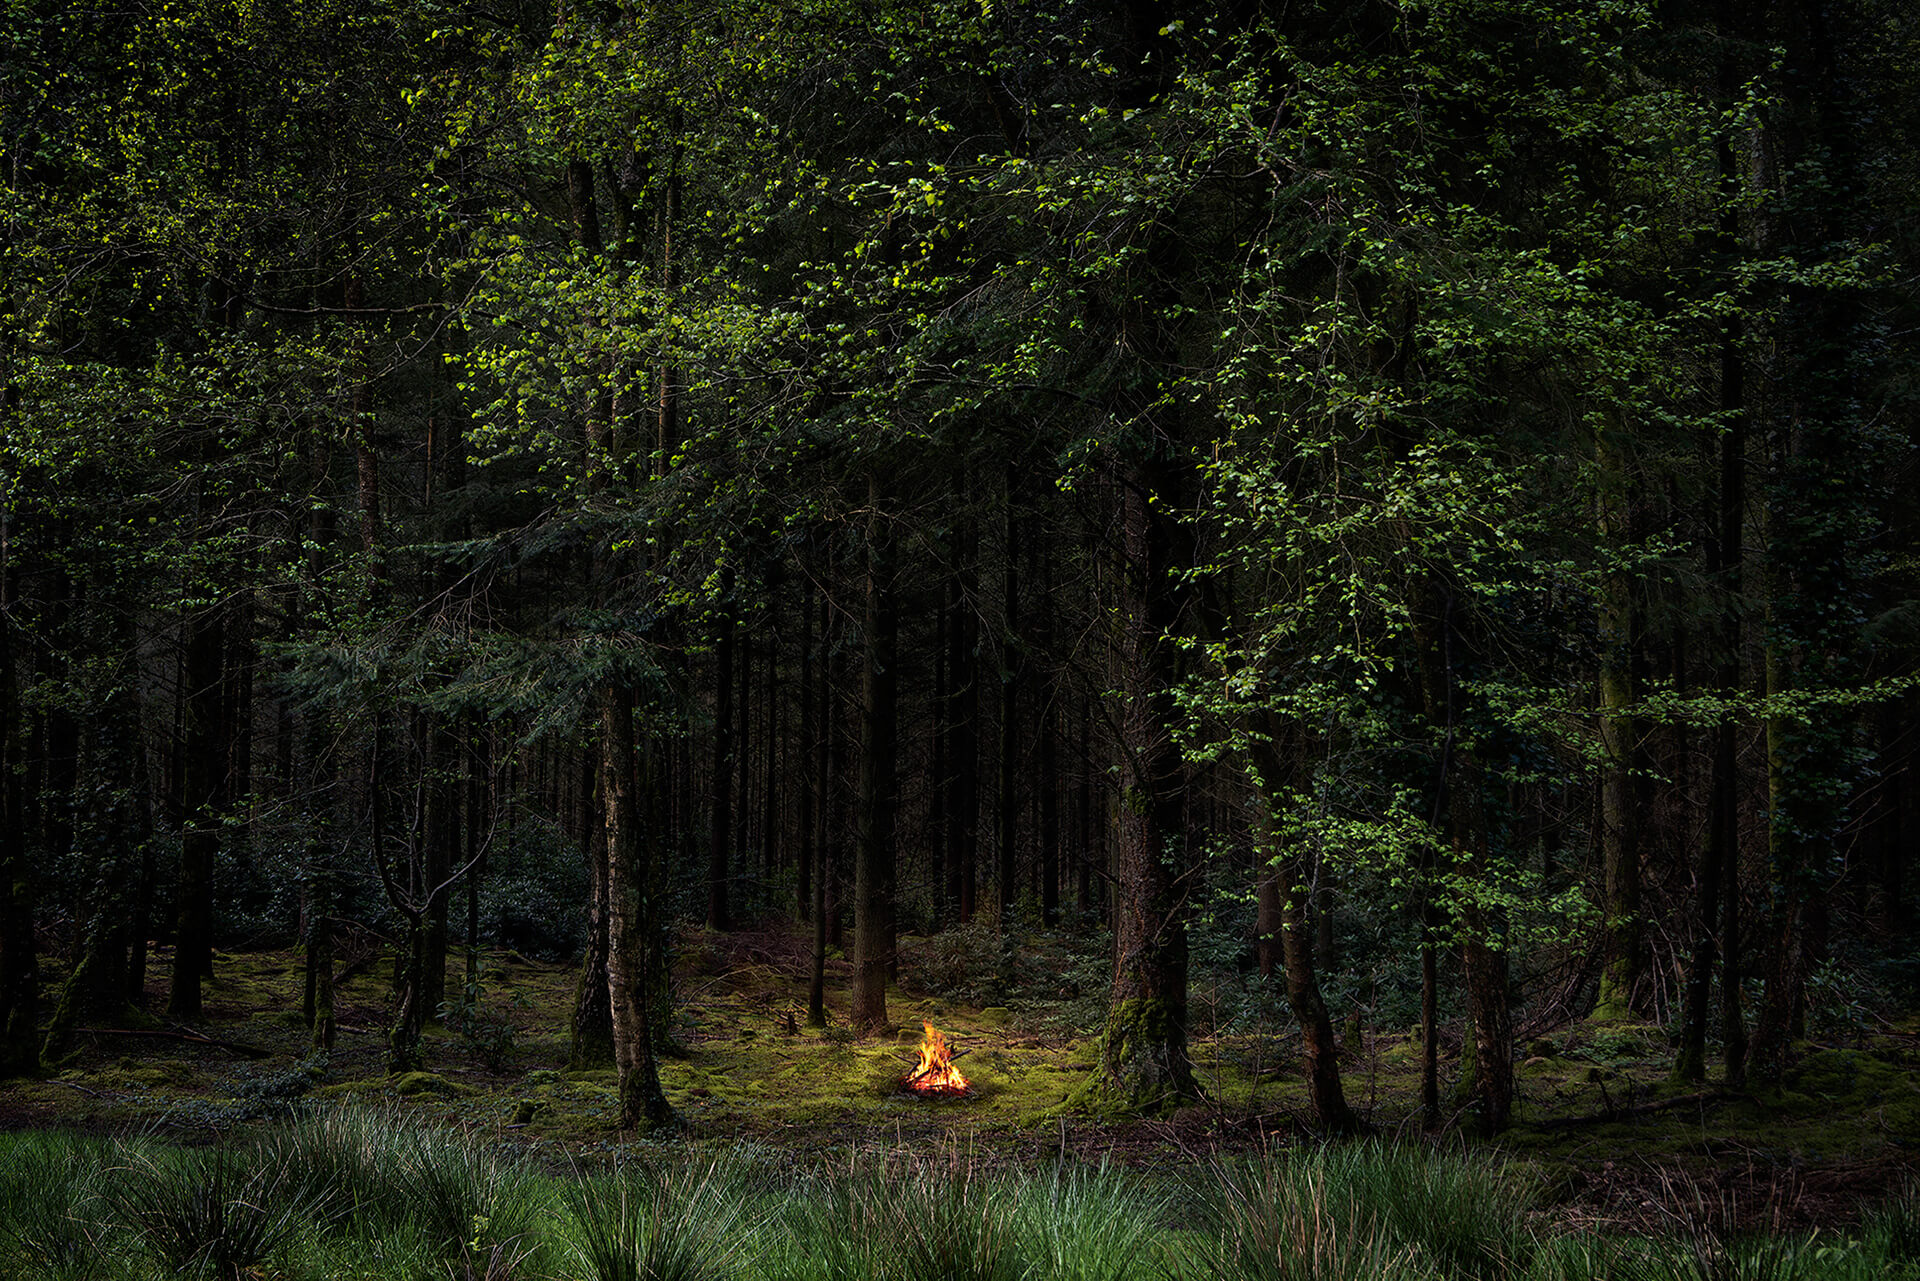 Fires | Ellie Davies| STIRworld